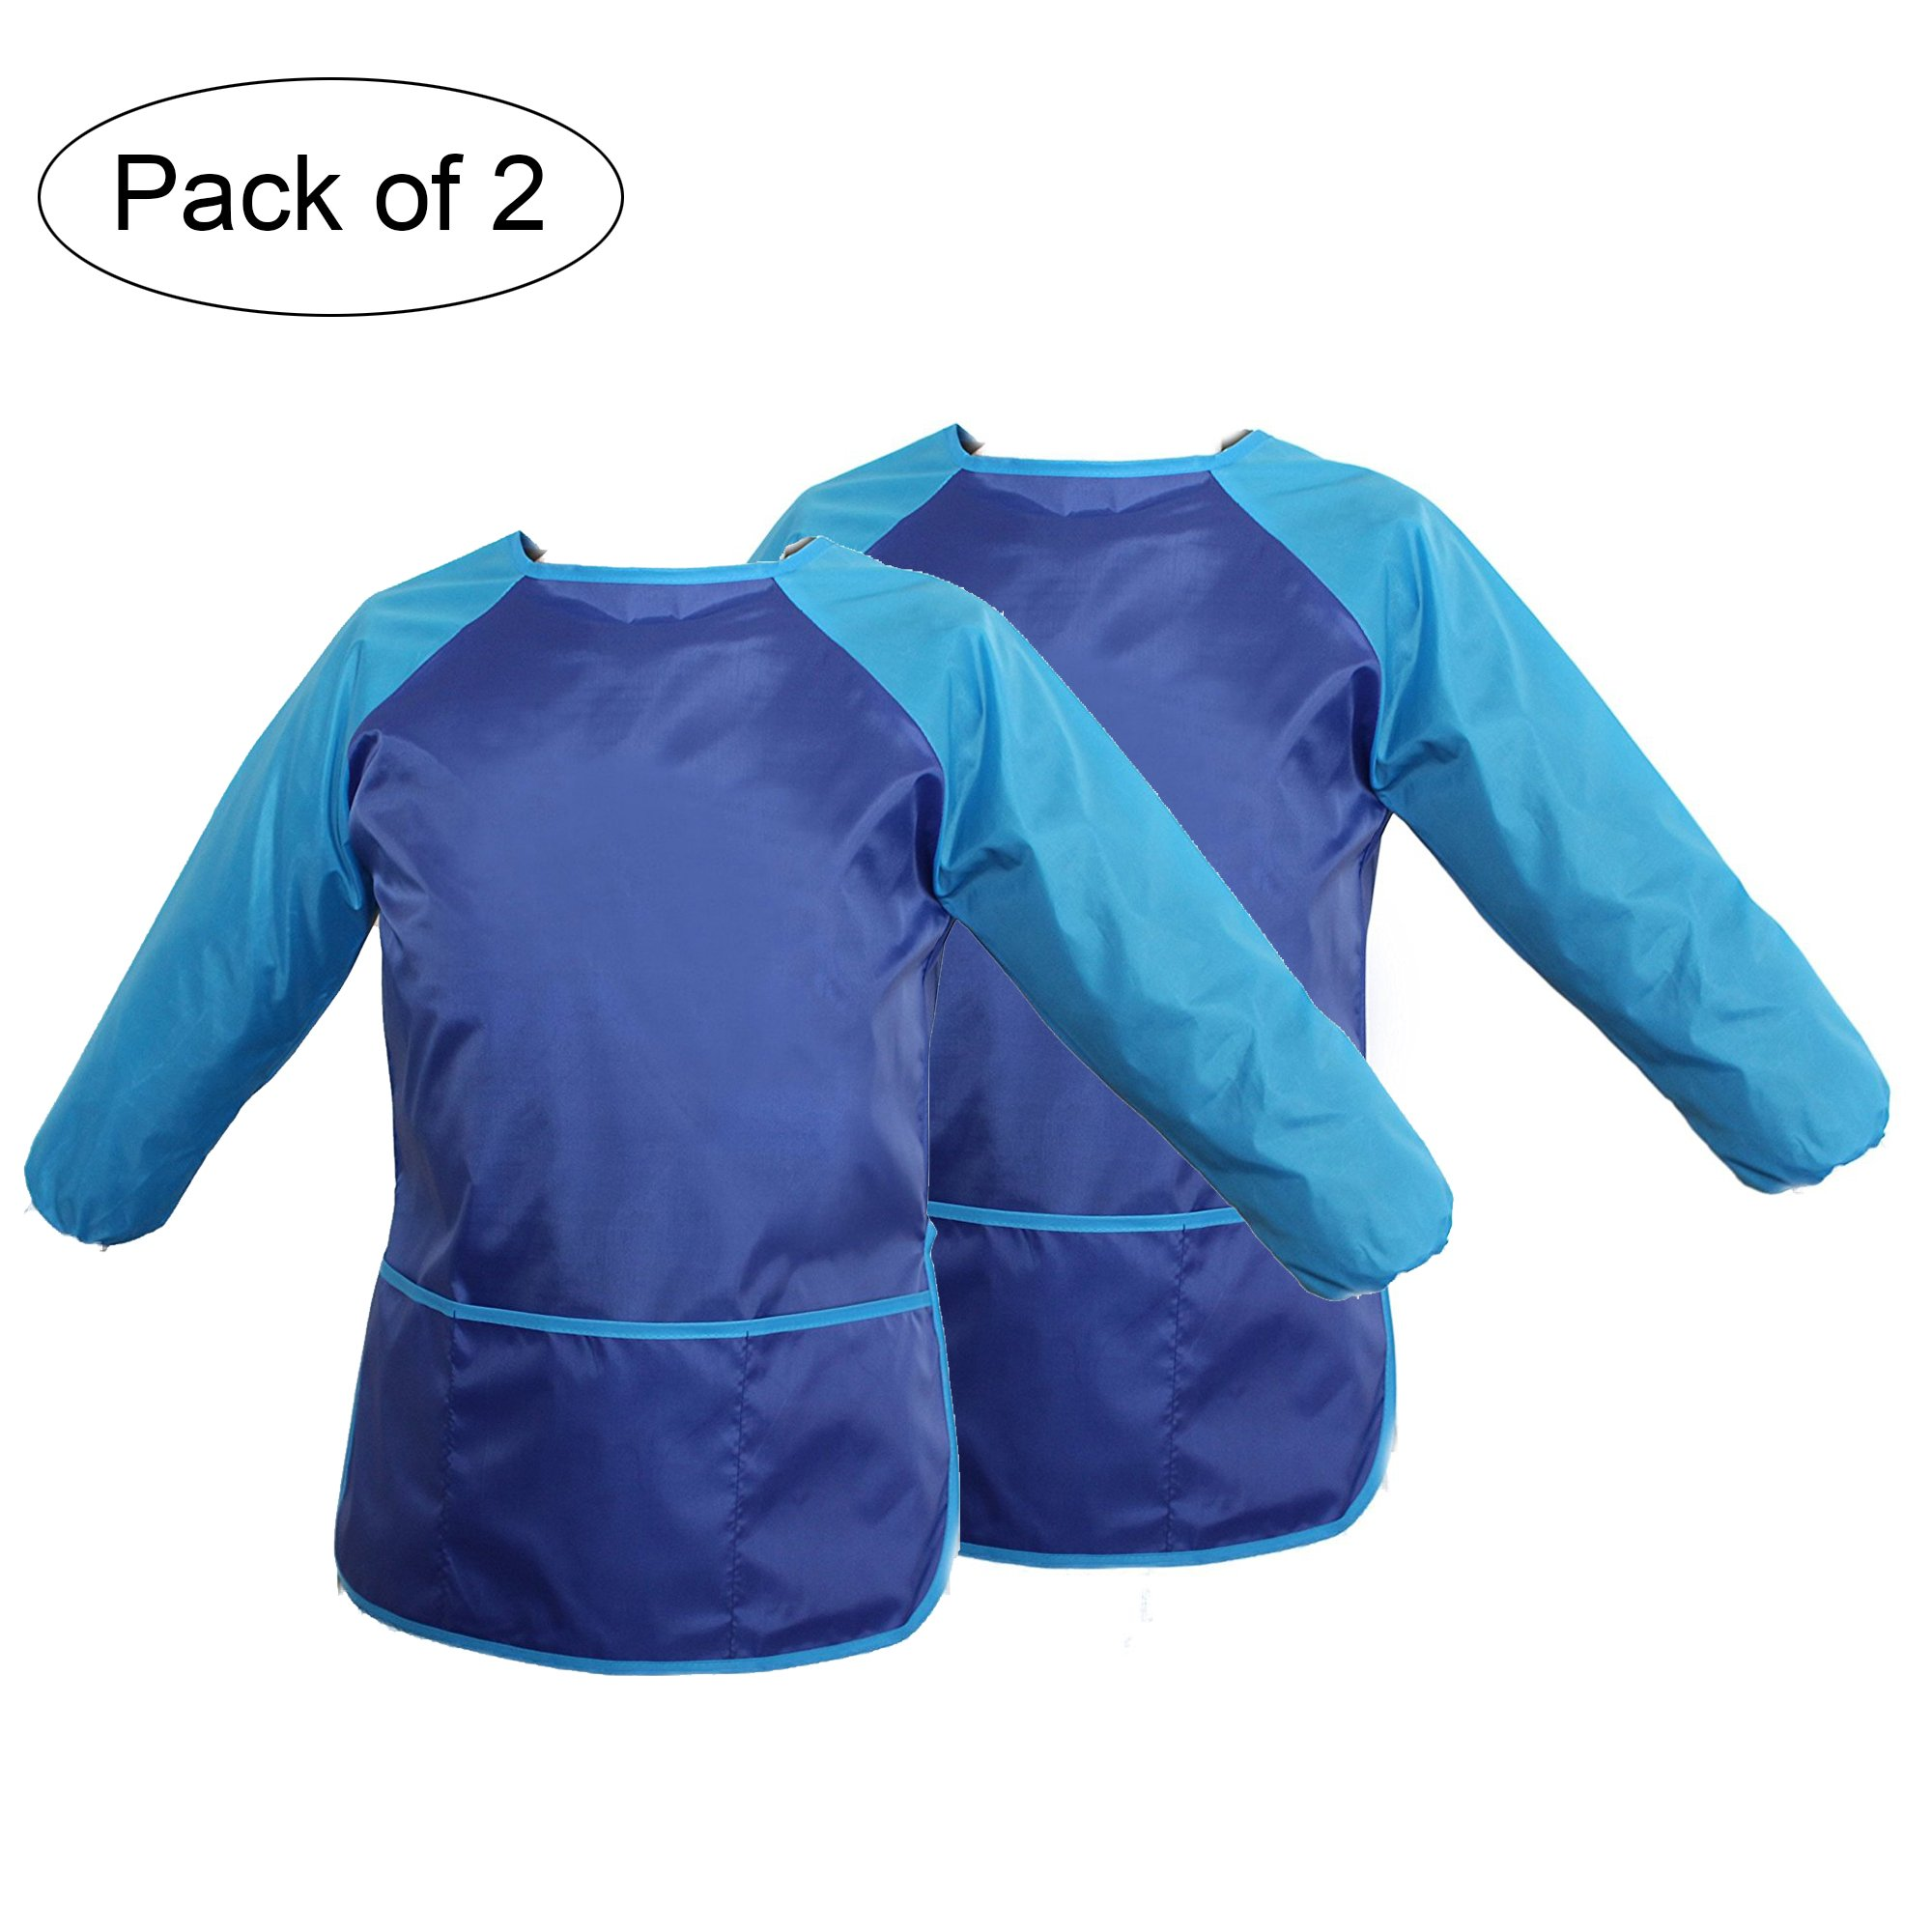 ilovebaby Children's Art Smock, Waterproof, Kids Aprons,Artist Smocks,Painting Apron with Long Sleeves,Ideal for Painting Classroom and Kitchen,Pack of 2,Color Blue